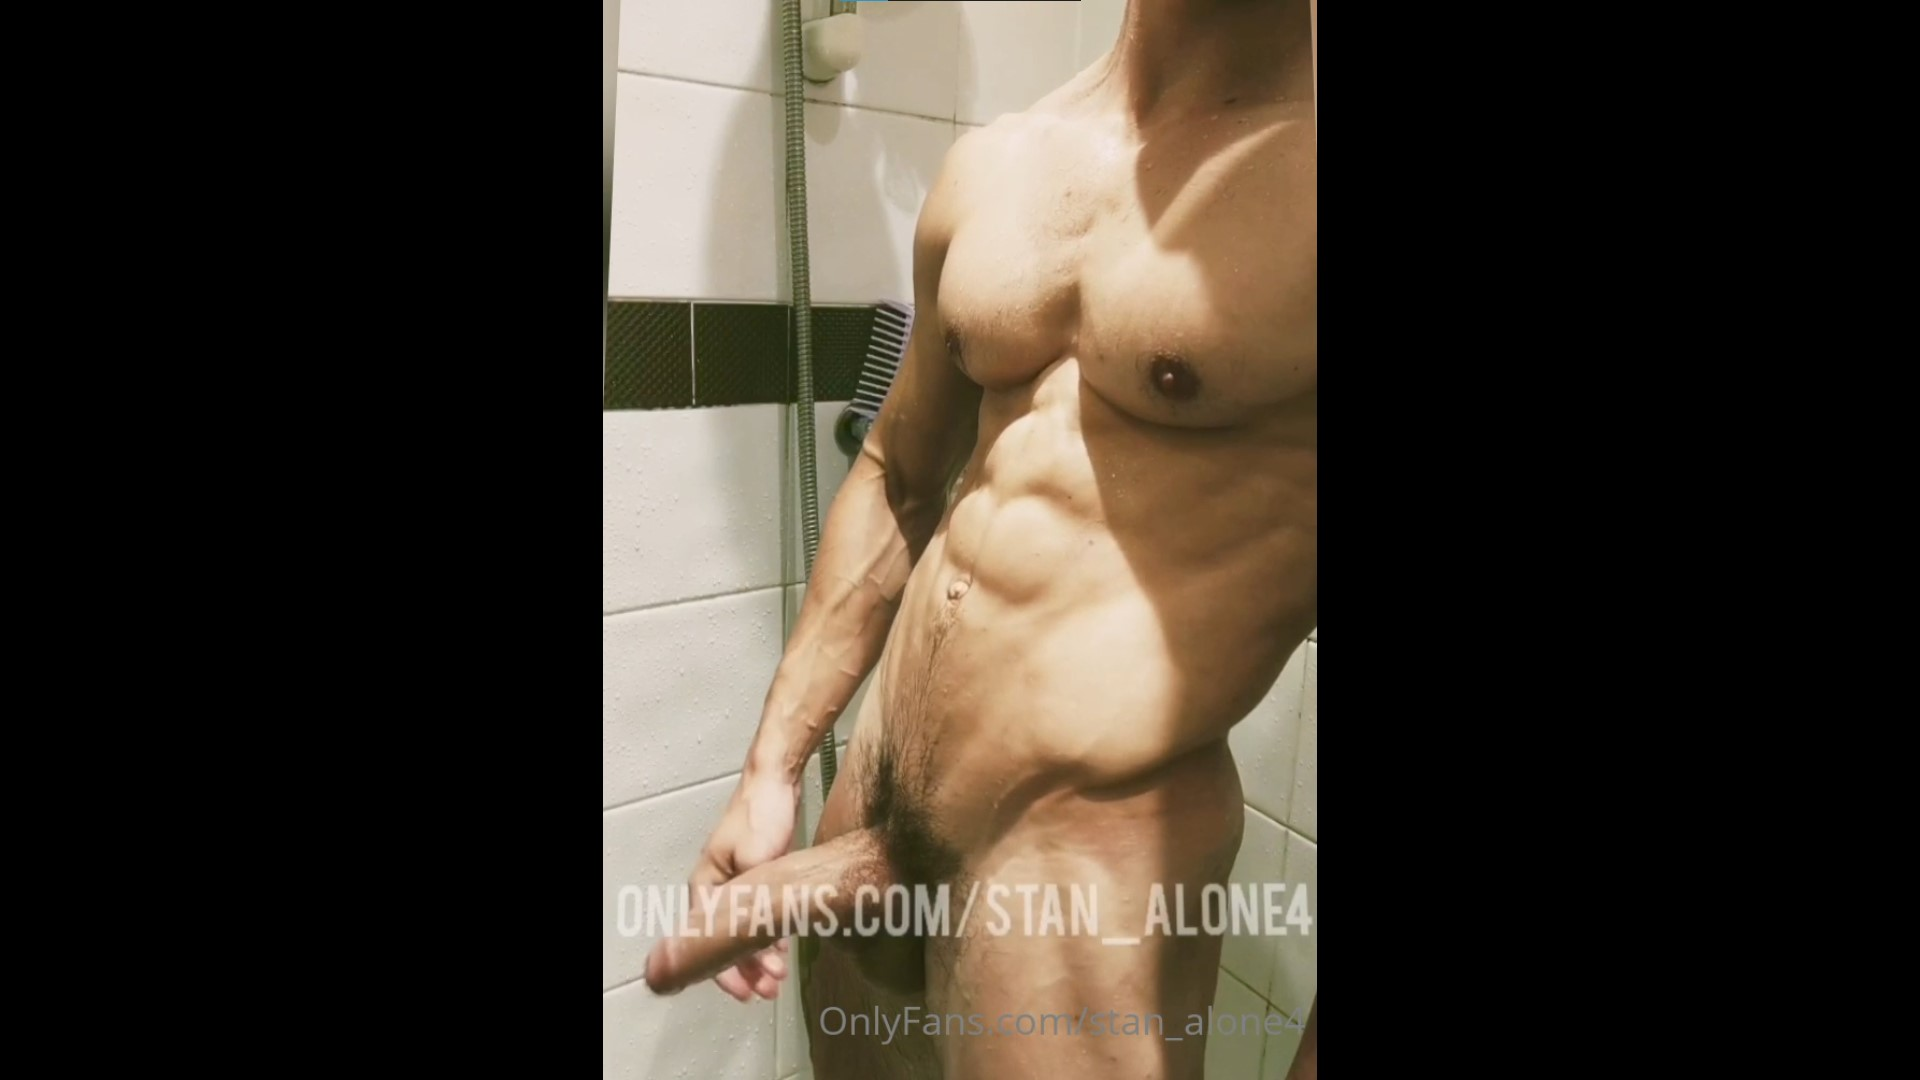 Jerking my thick cock in the shower and rubbing cum over myself - Stan_alone4